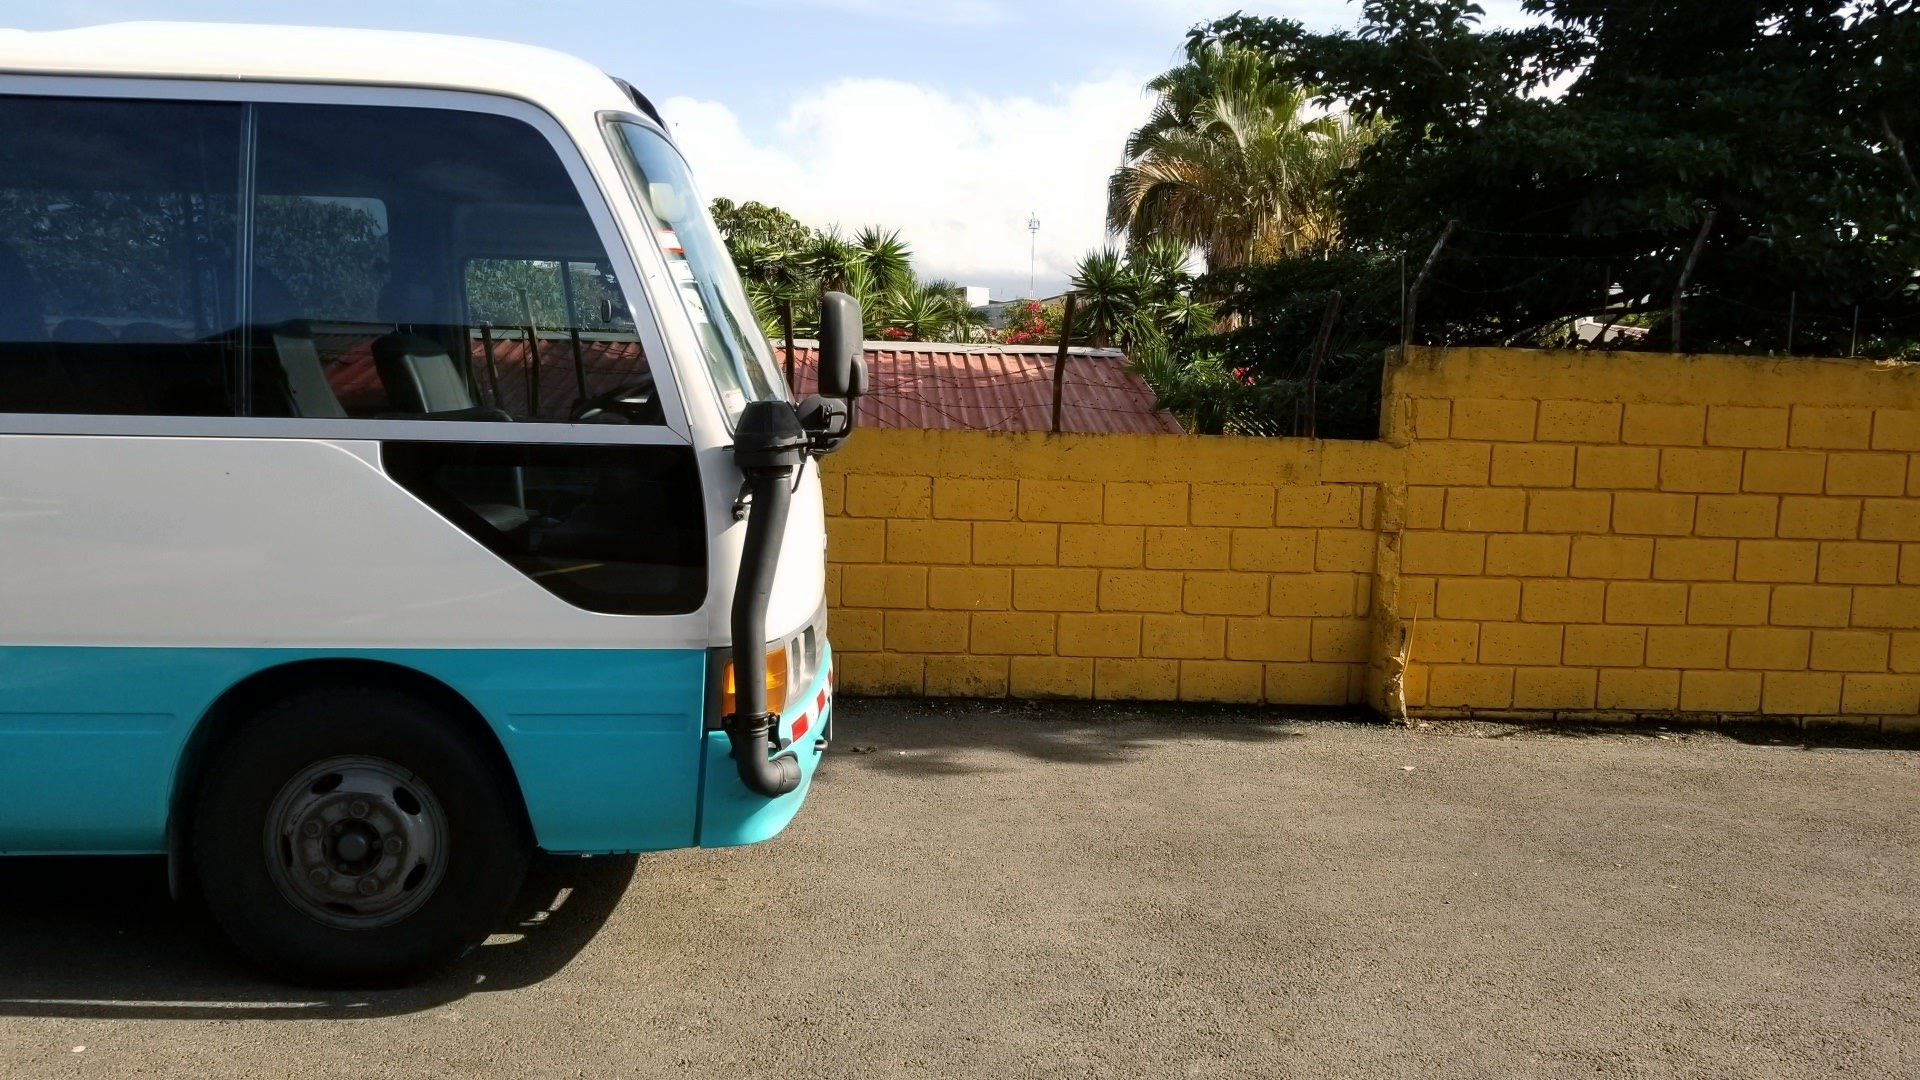 Bus, Wall, Costa Rica, Photographer, Photography, Missions